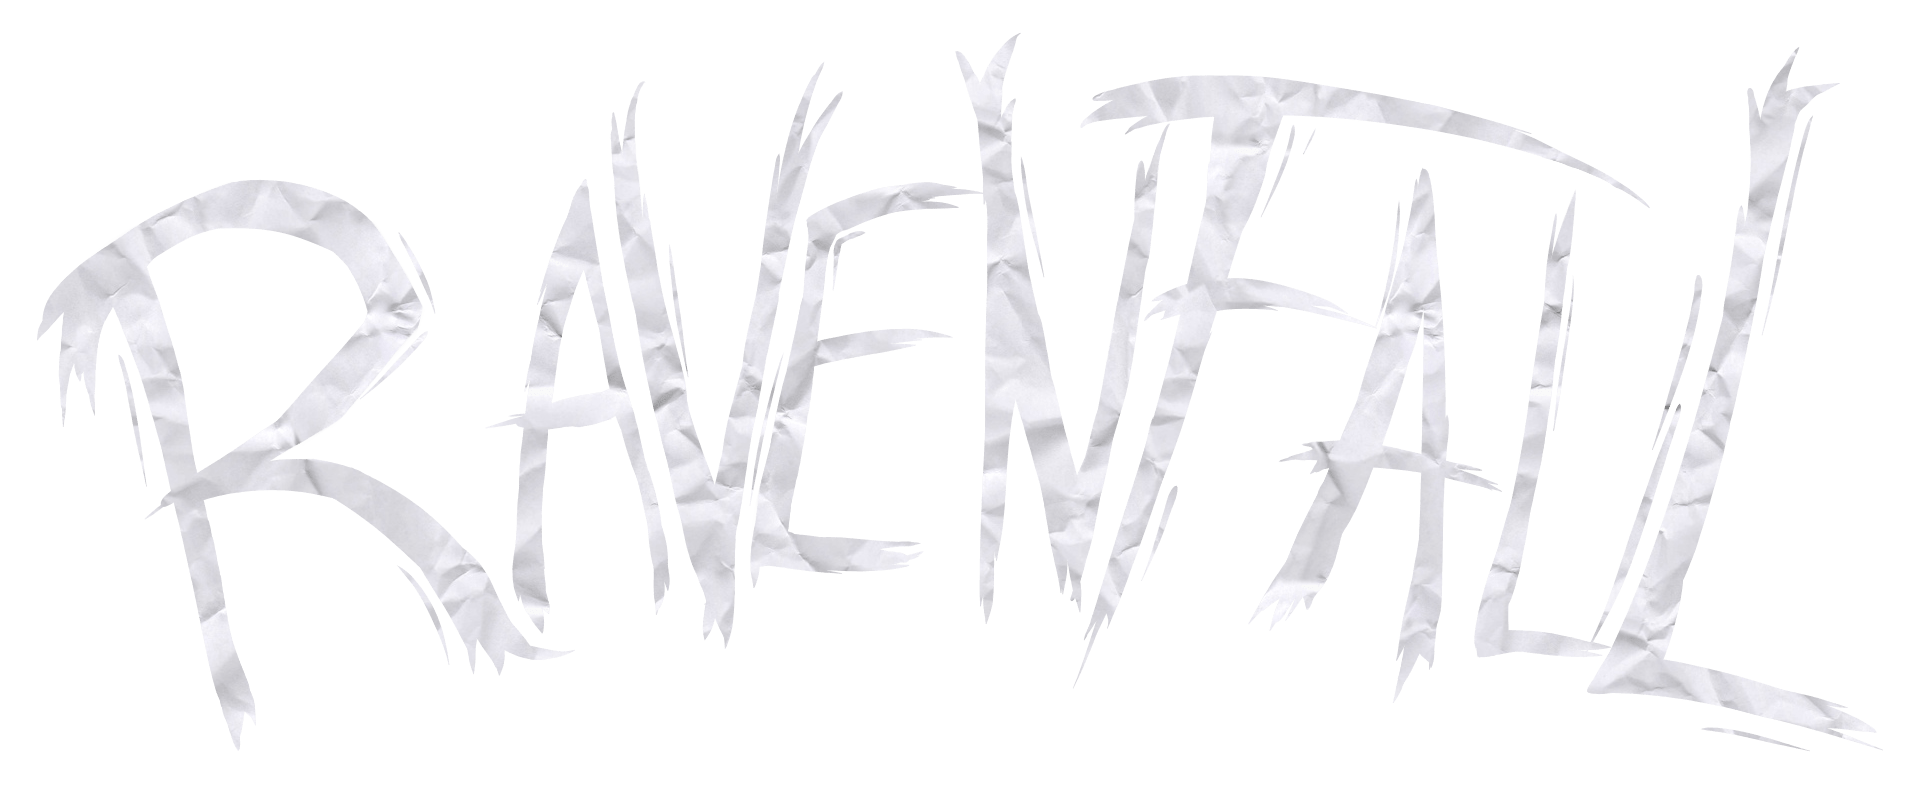 Ravenfall Rewrite In Progress By Cheete